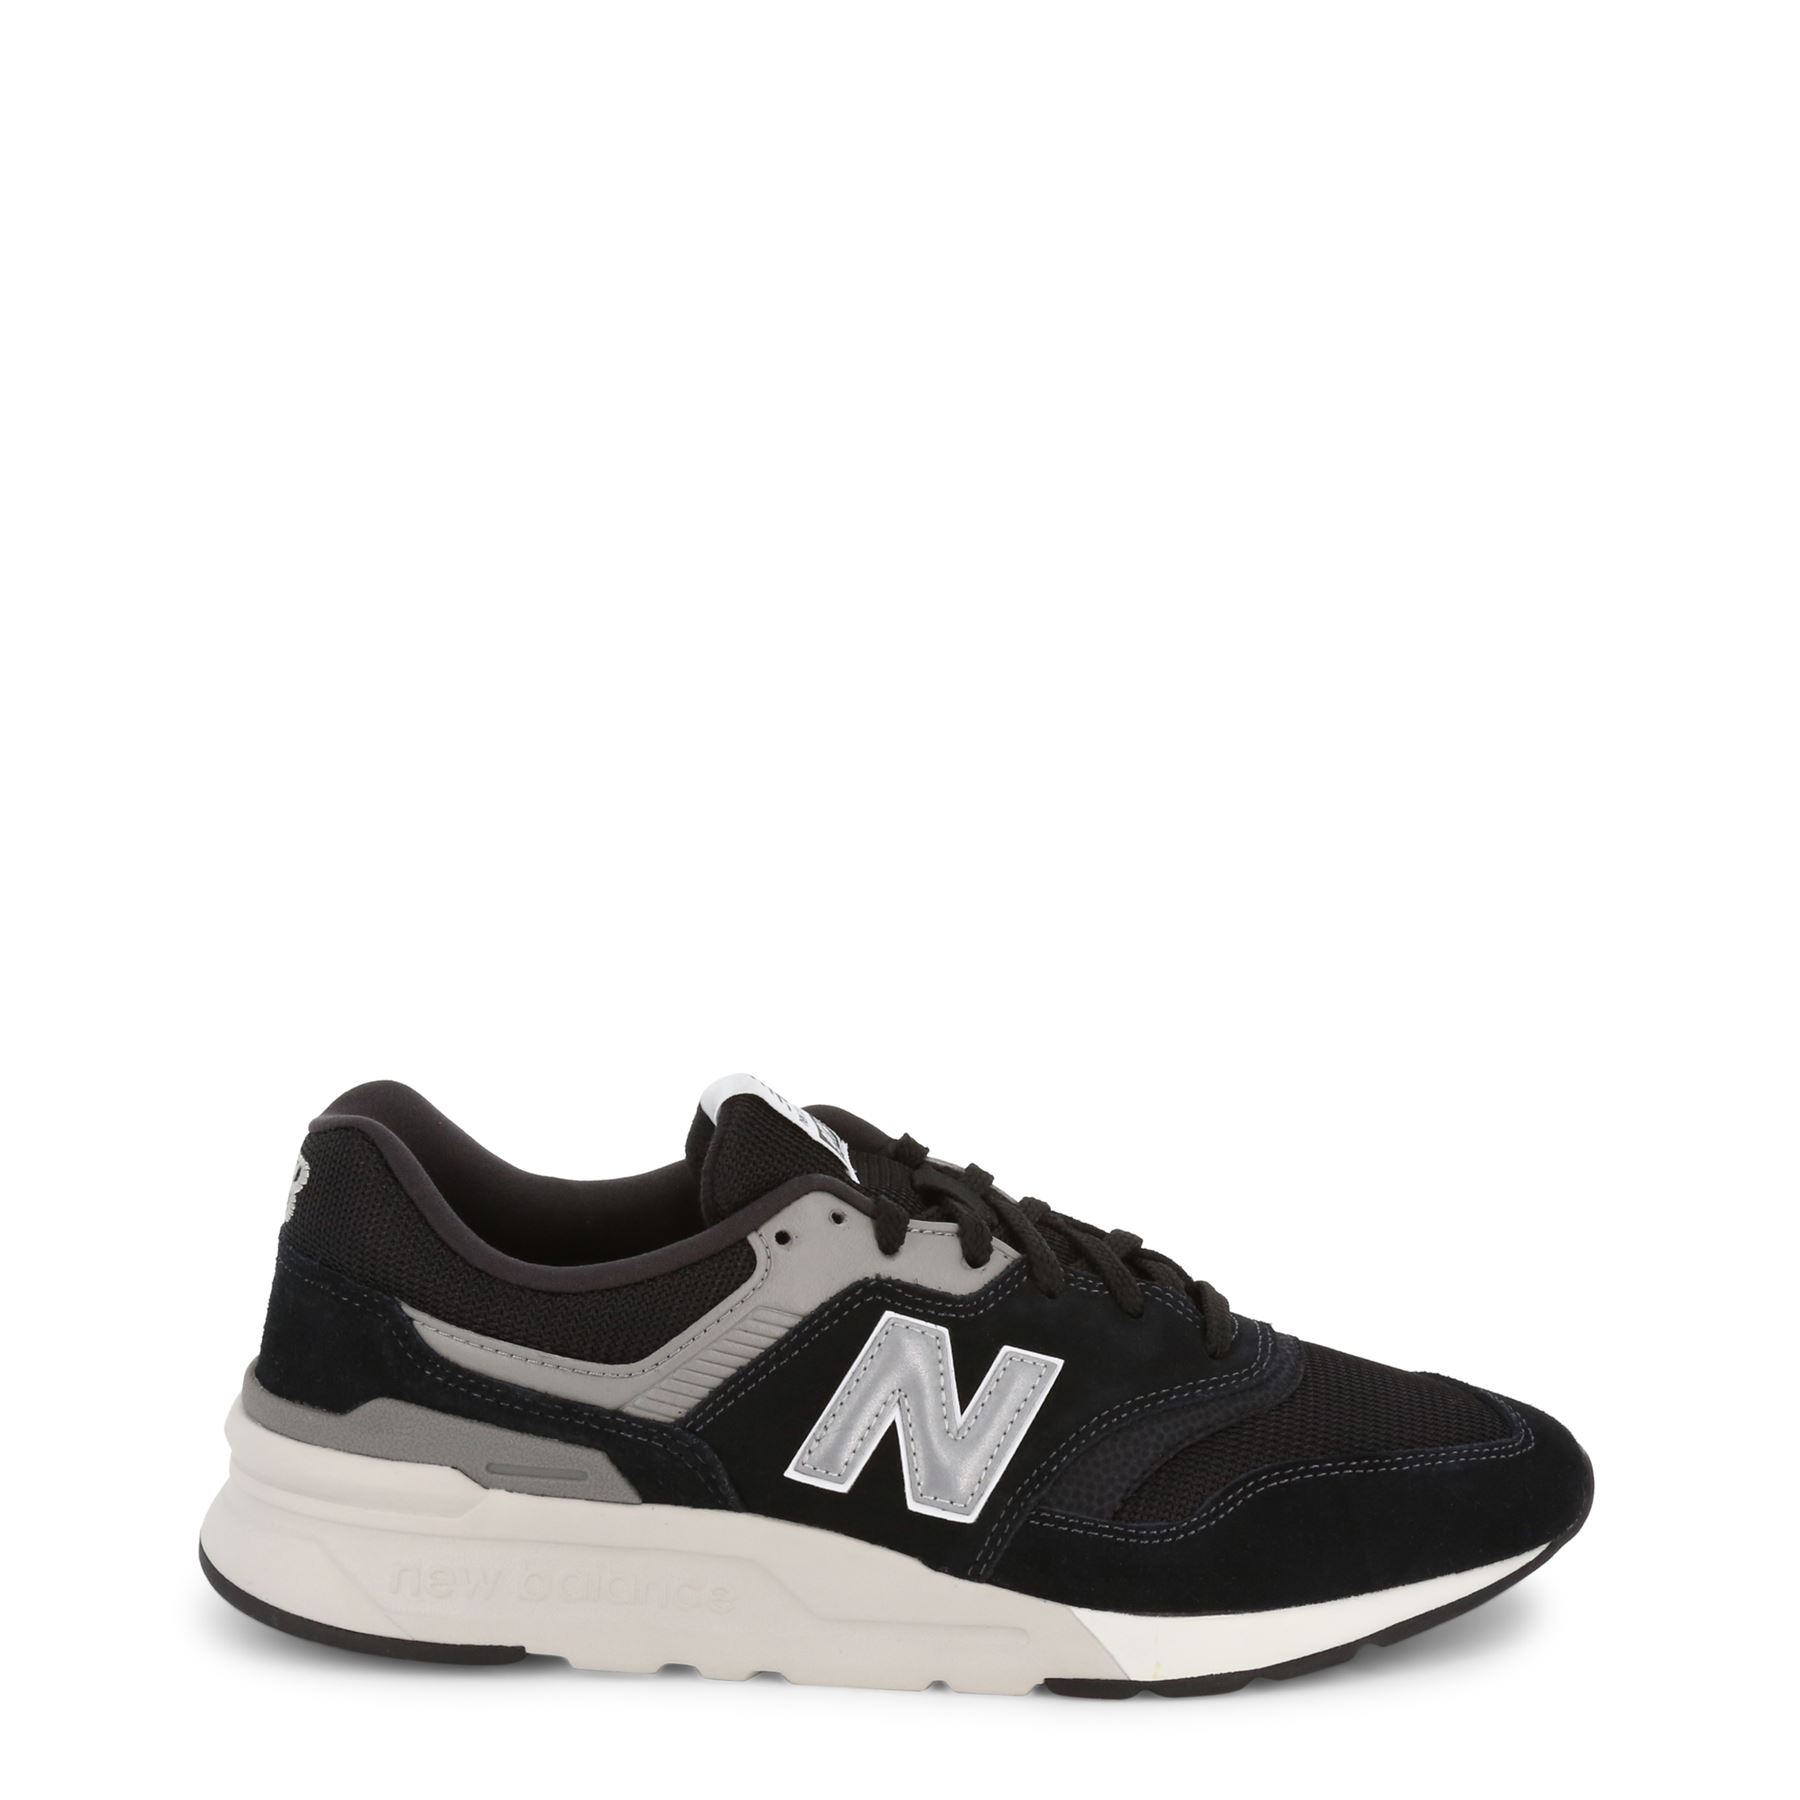 New Balance Men's bluee Athletic Sneakers Low-Top Lace-Up Faux Suede